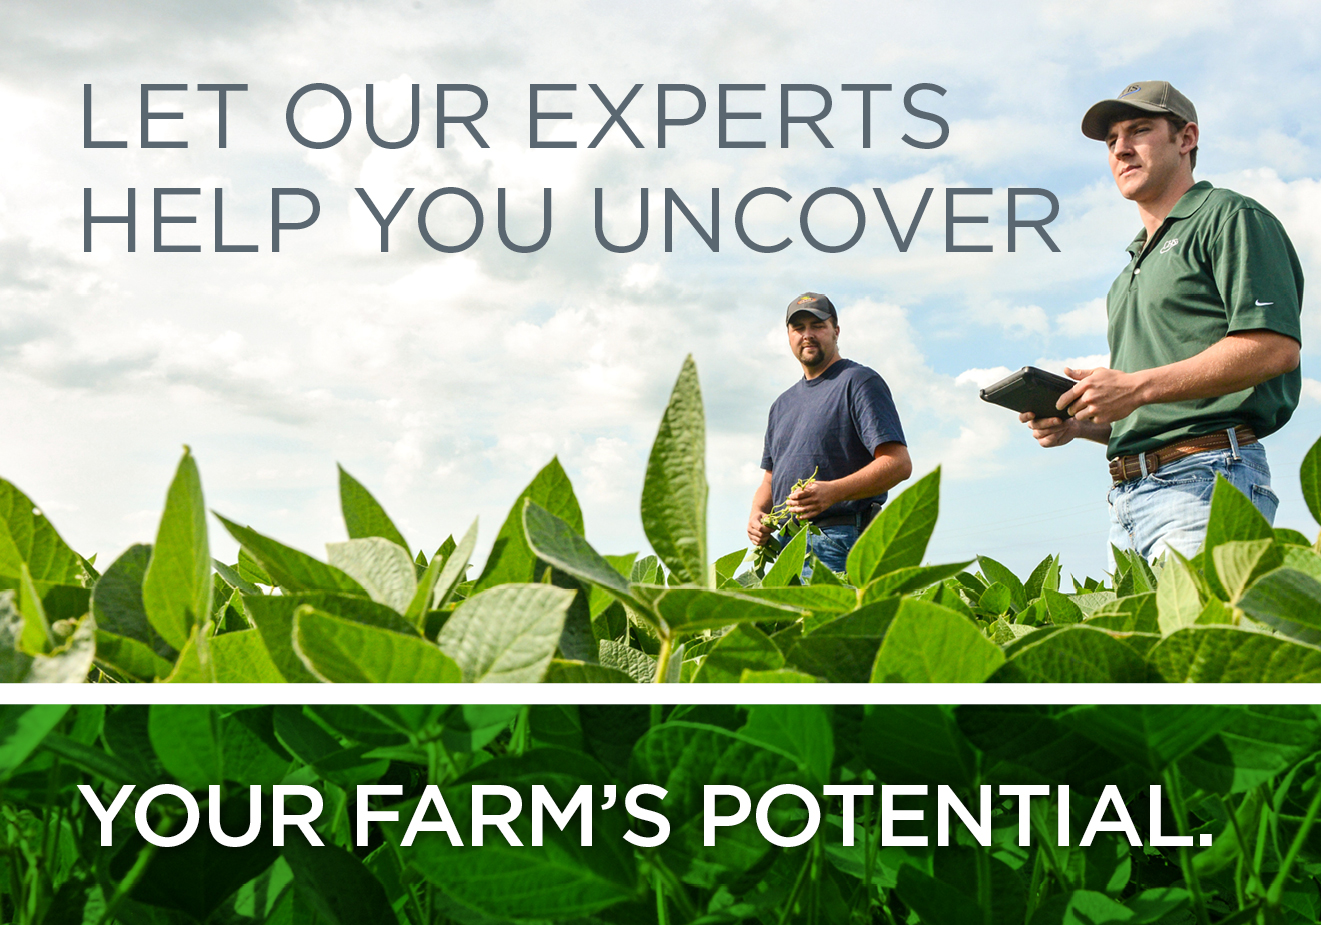 Let our experts help uncover your farm's potential